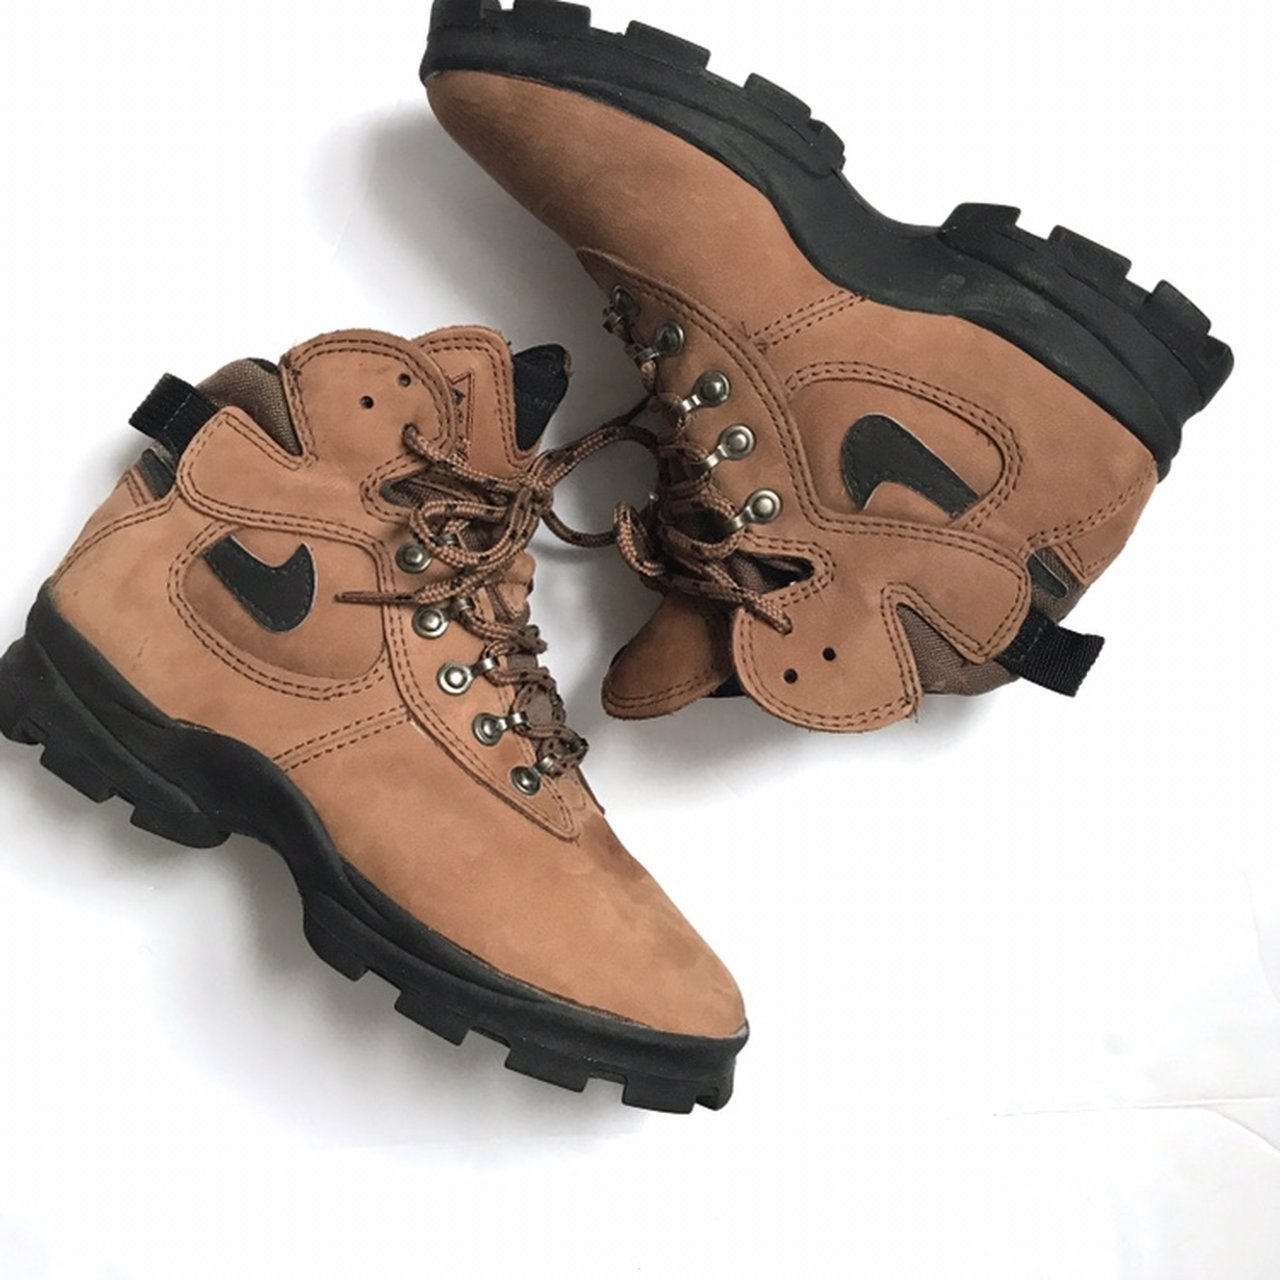 Depop Boots Acg Boots Youth 6 Air Euc Vintage Size Nike Hiking w4gnqpaxvU